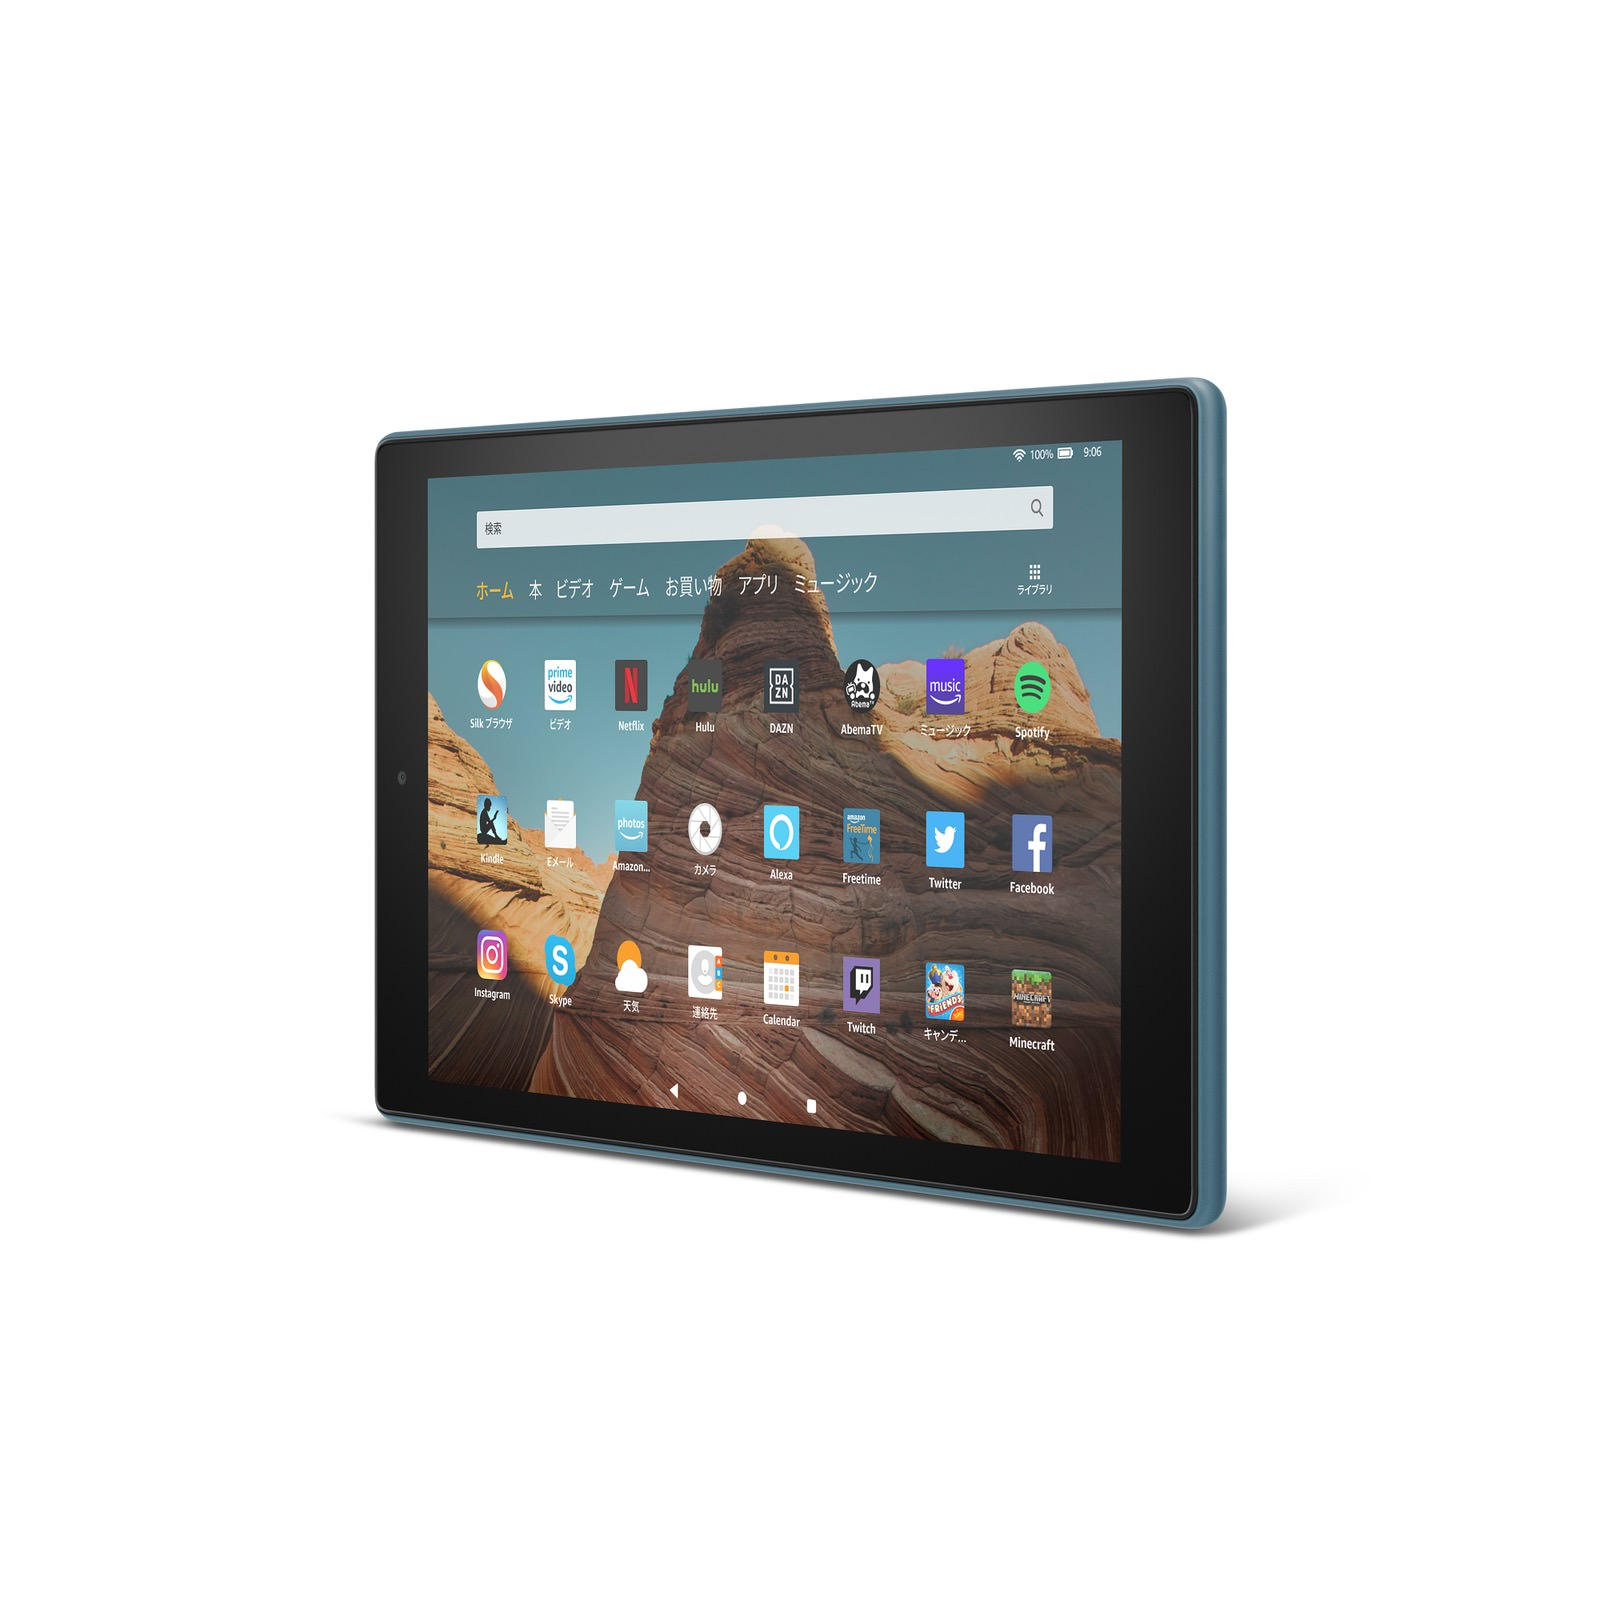 Fire-HD-10-Tablet-New-Model-09.jpg